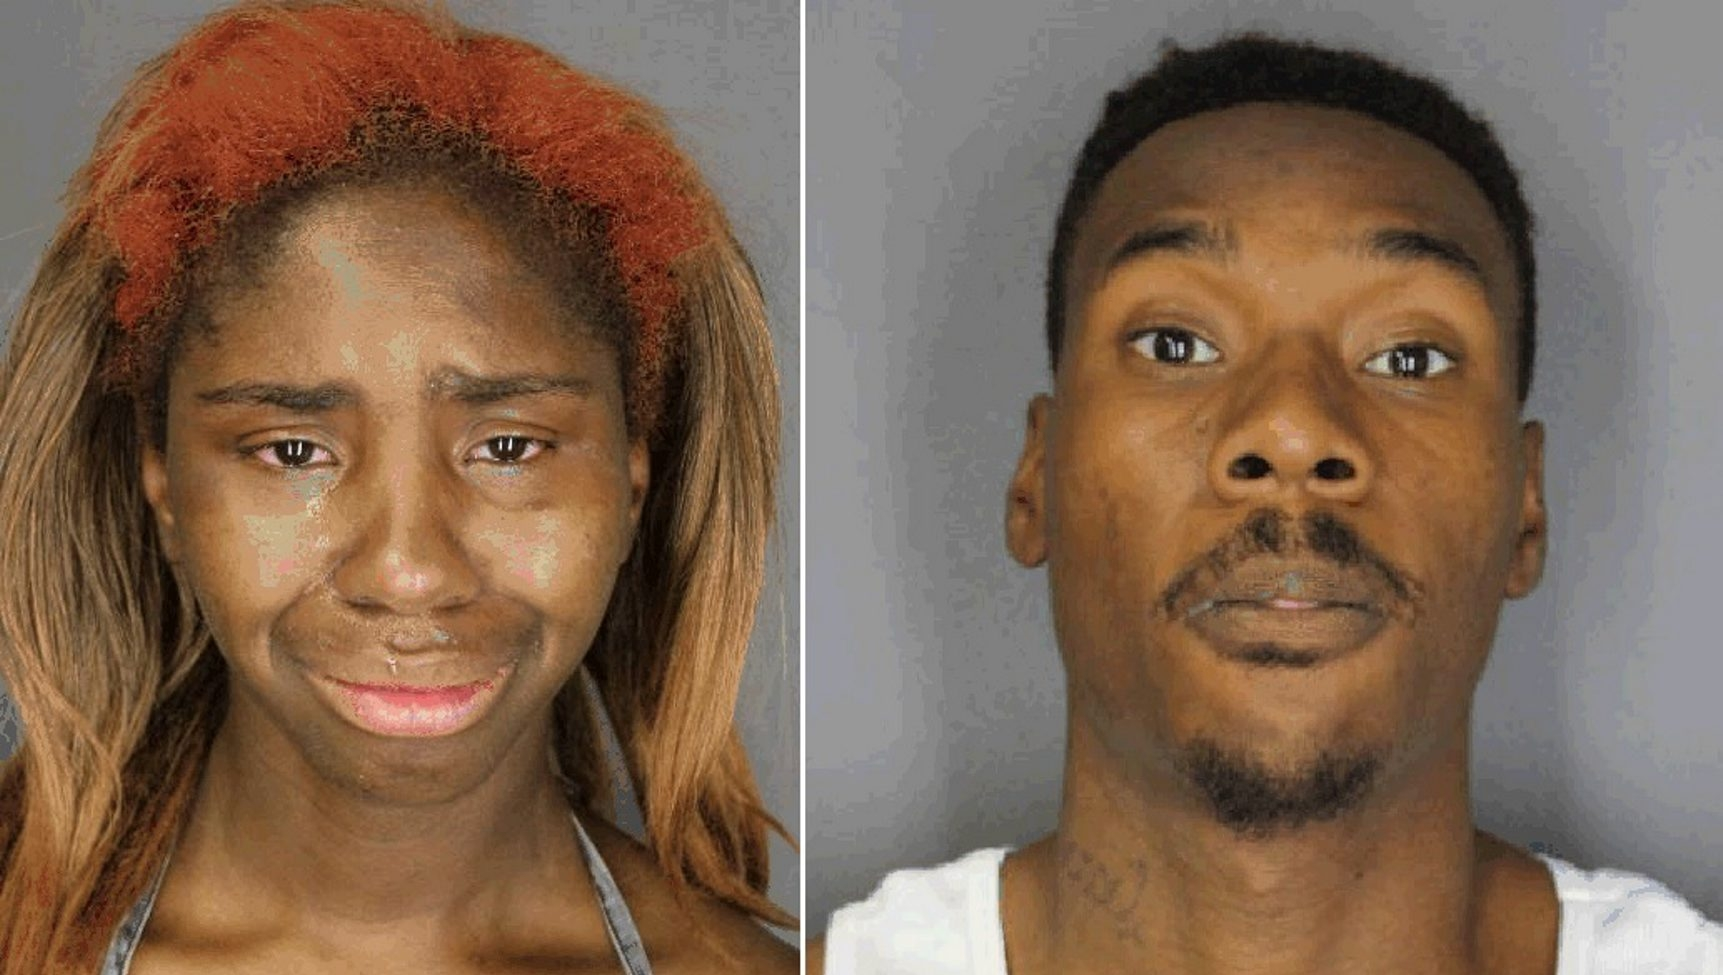 Maureen Fabre, 24, and Terrell Hagans, 26, were charged after three children were found living in deplorable conditions. (Photos provided by Buffalo Police)